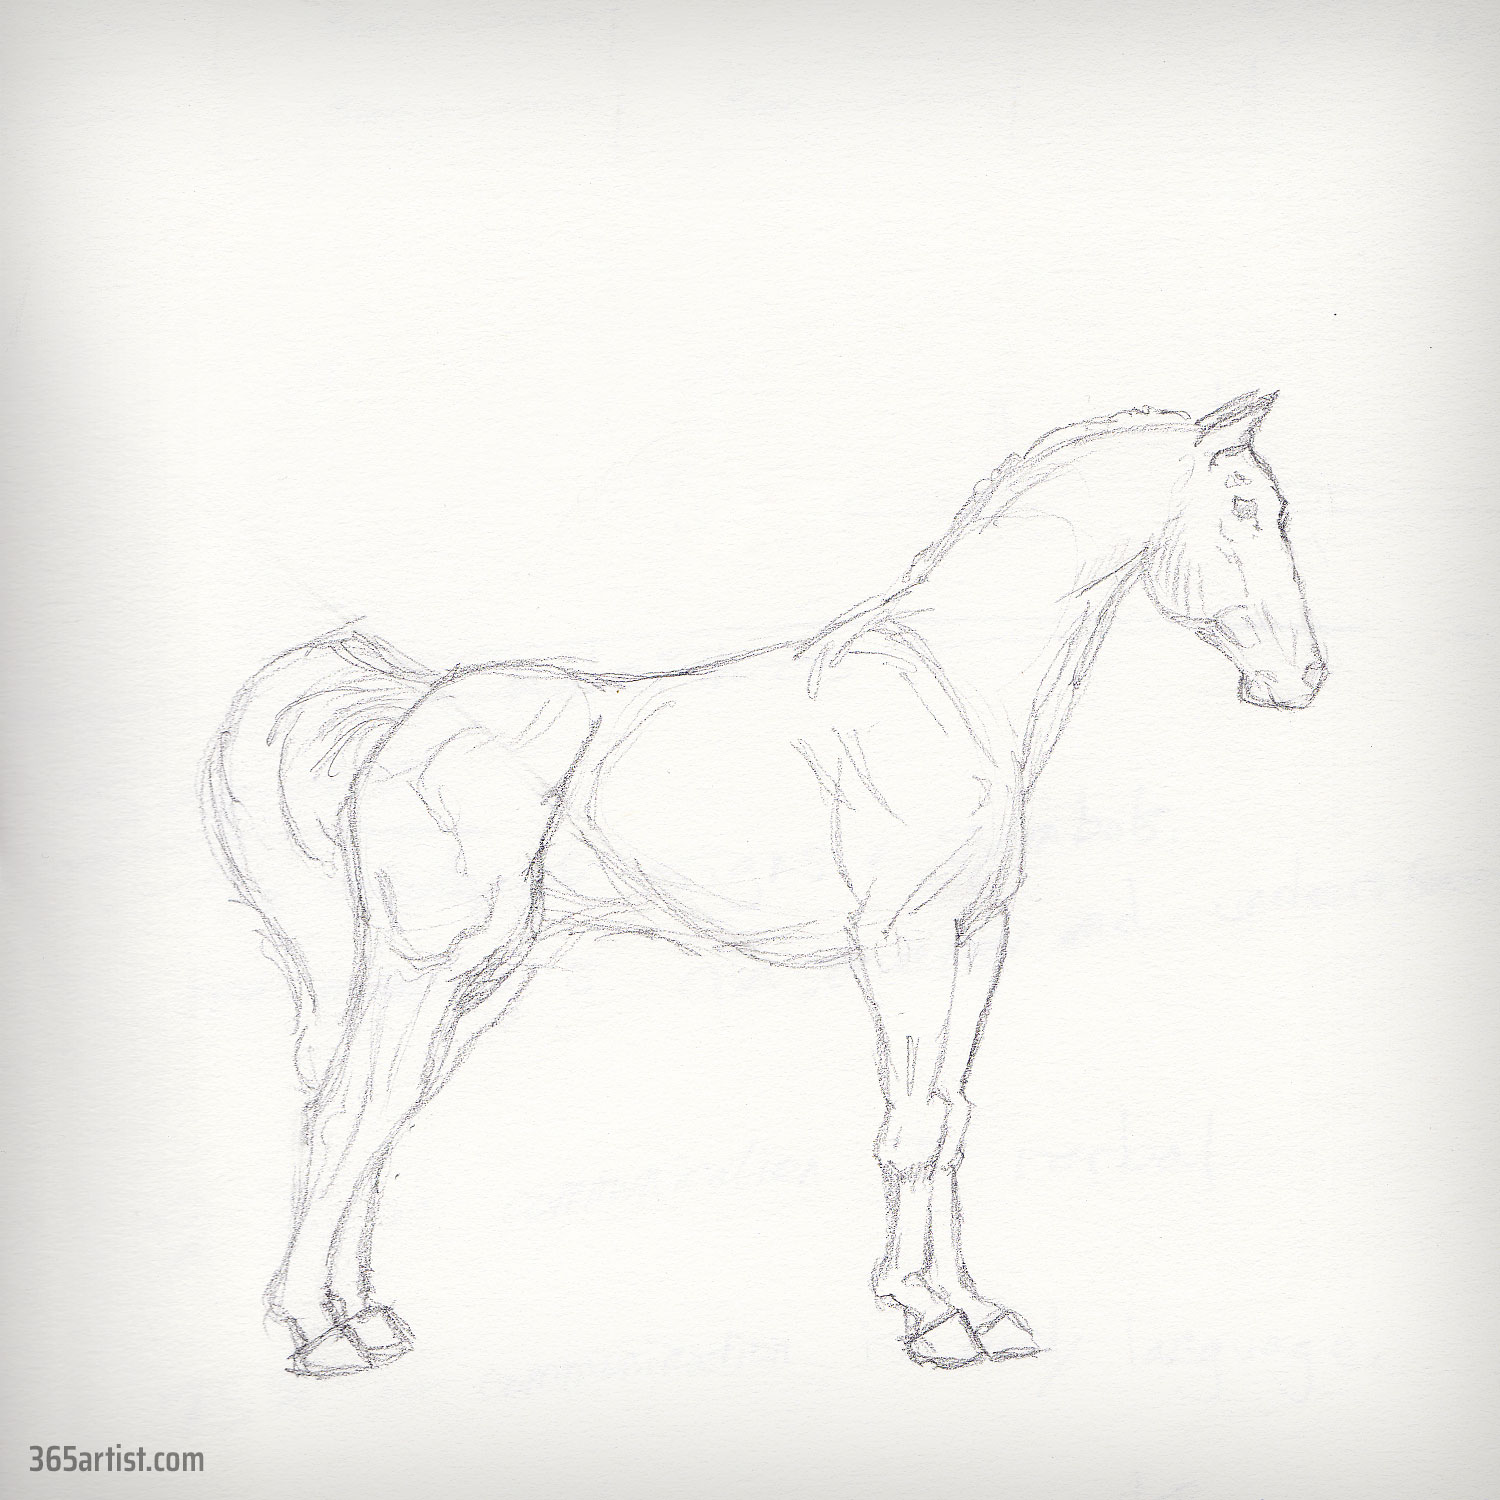 drawing sketch of a horse